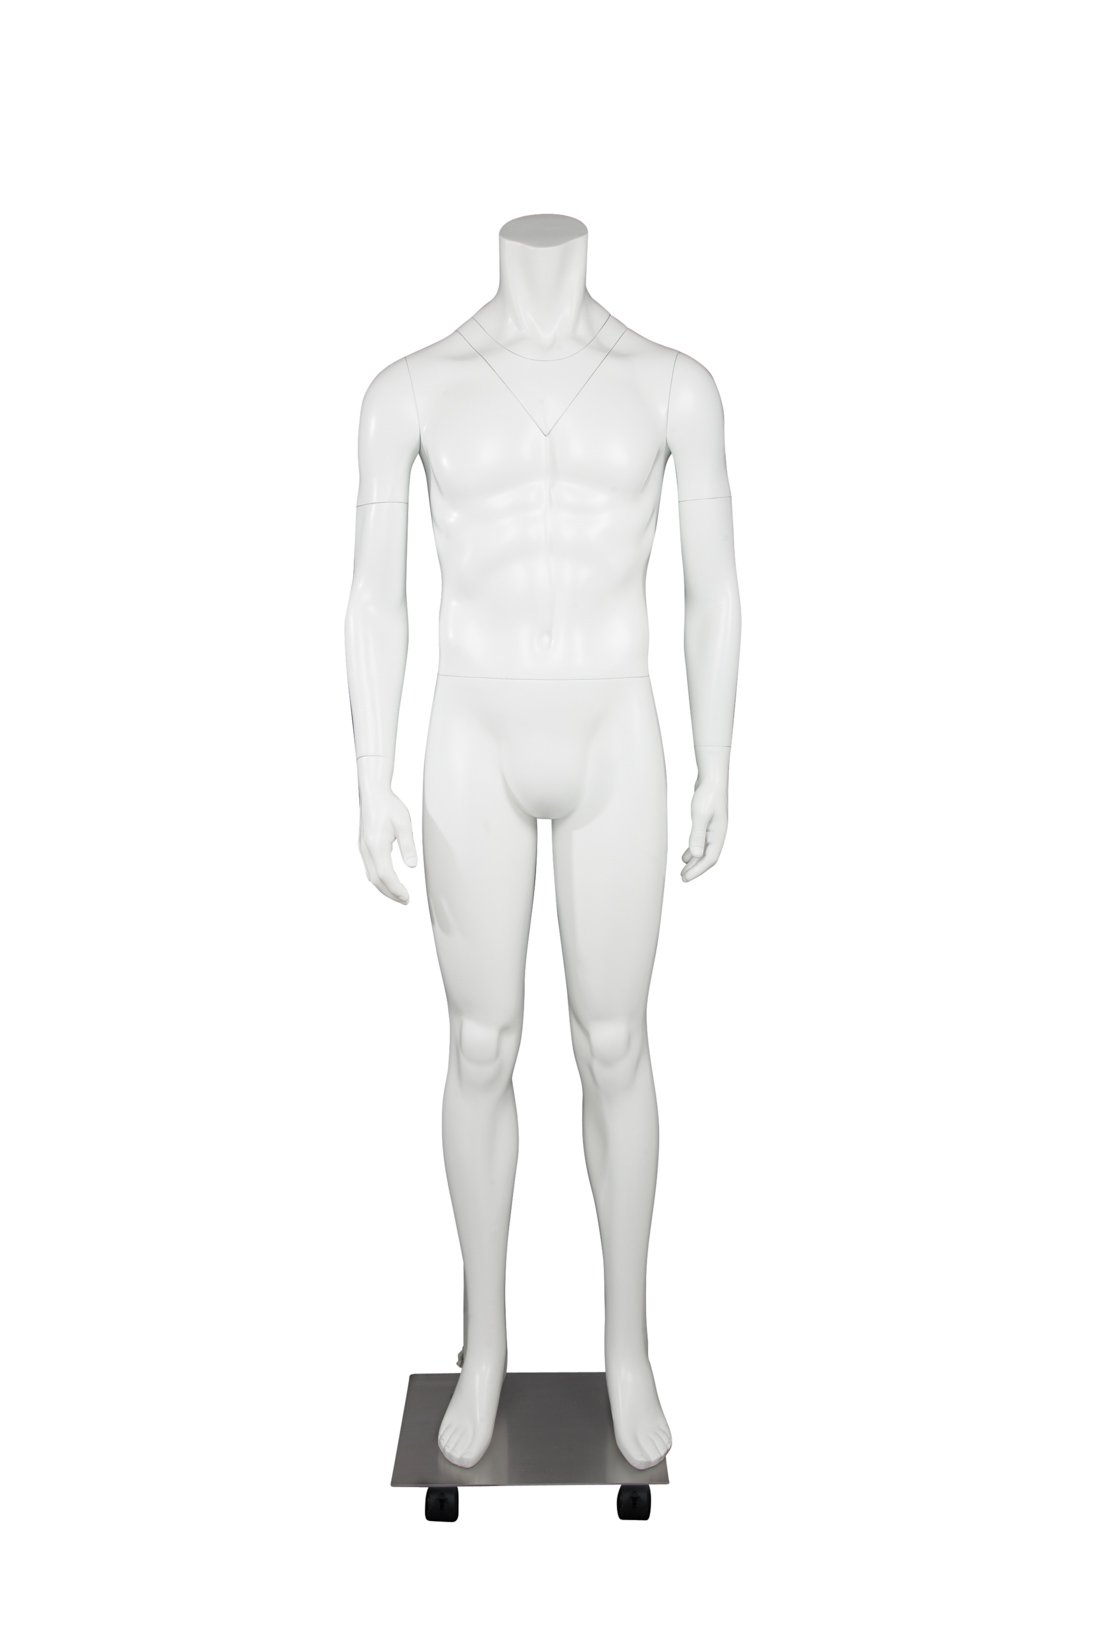 Newtech Display MAM-GHOSFULL/WHT Full Body Ghost/Invisible Mannequin